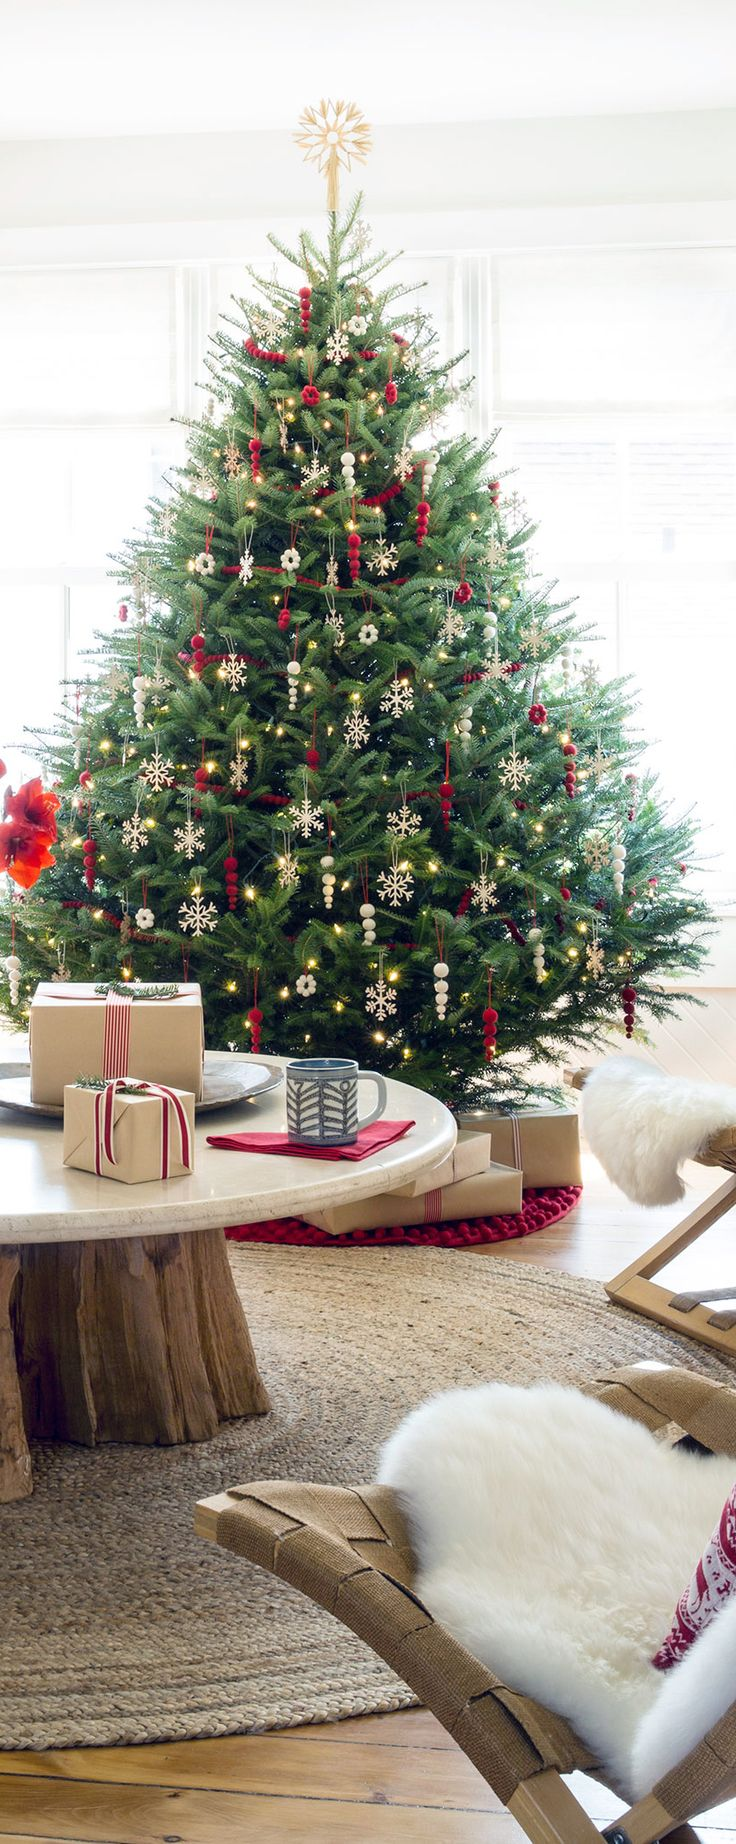 Christmas Decorating Ideas 1809 best Merry Christmas